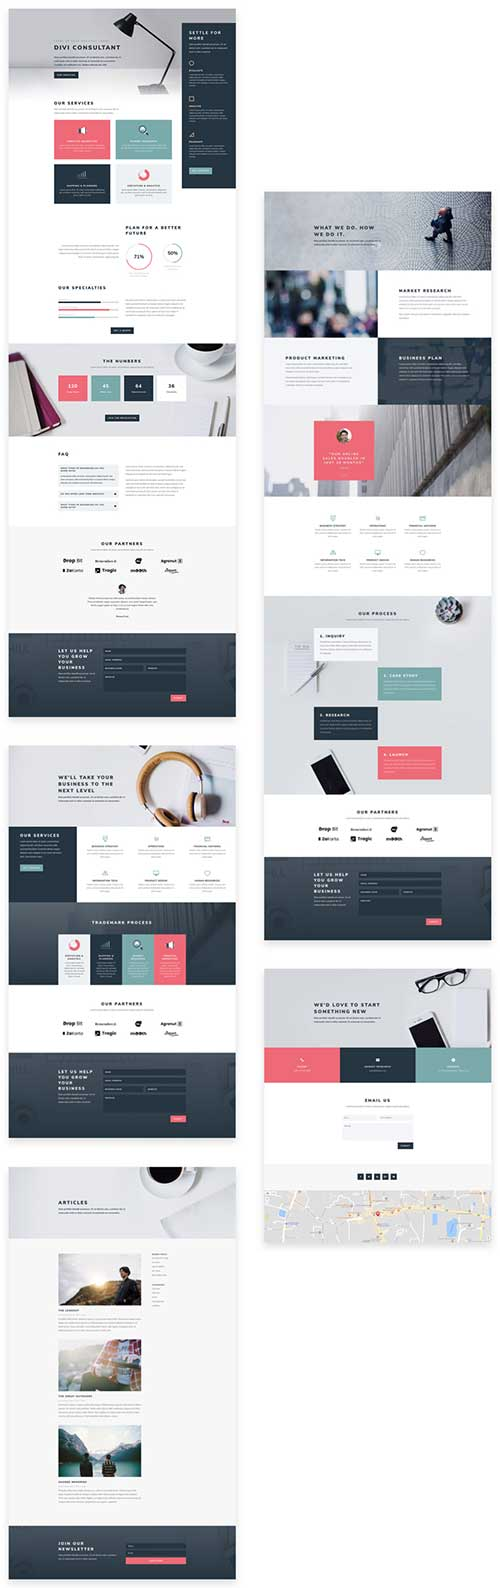 free consultants divi layout pack